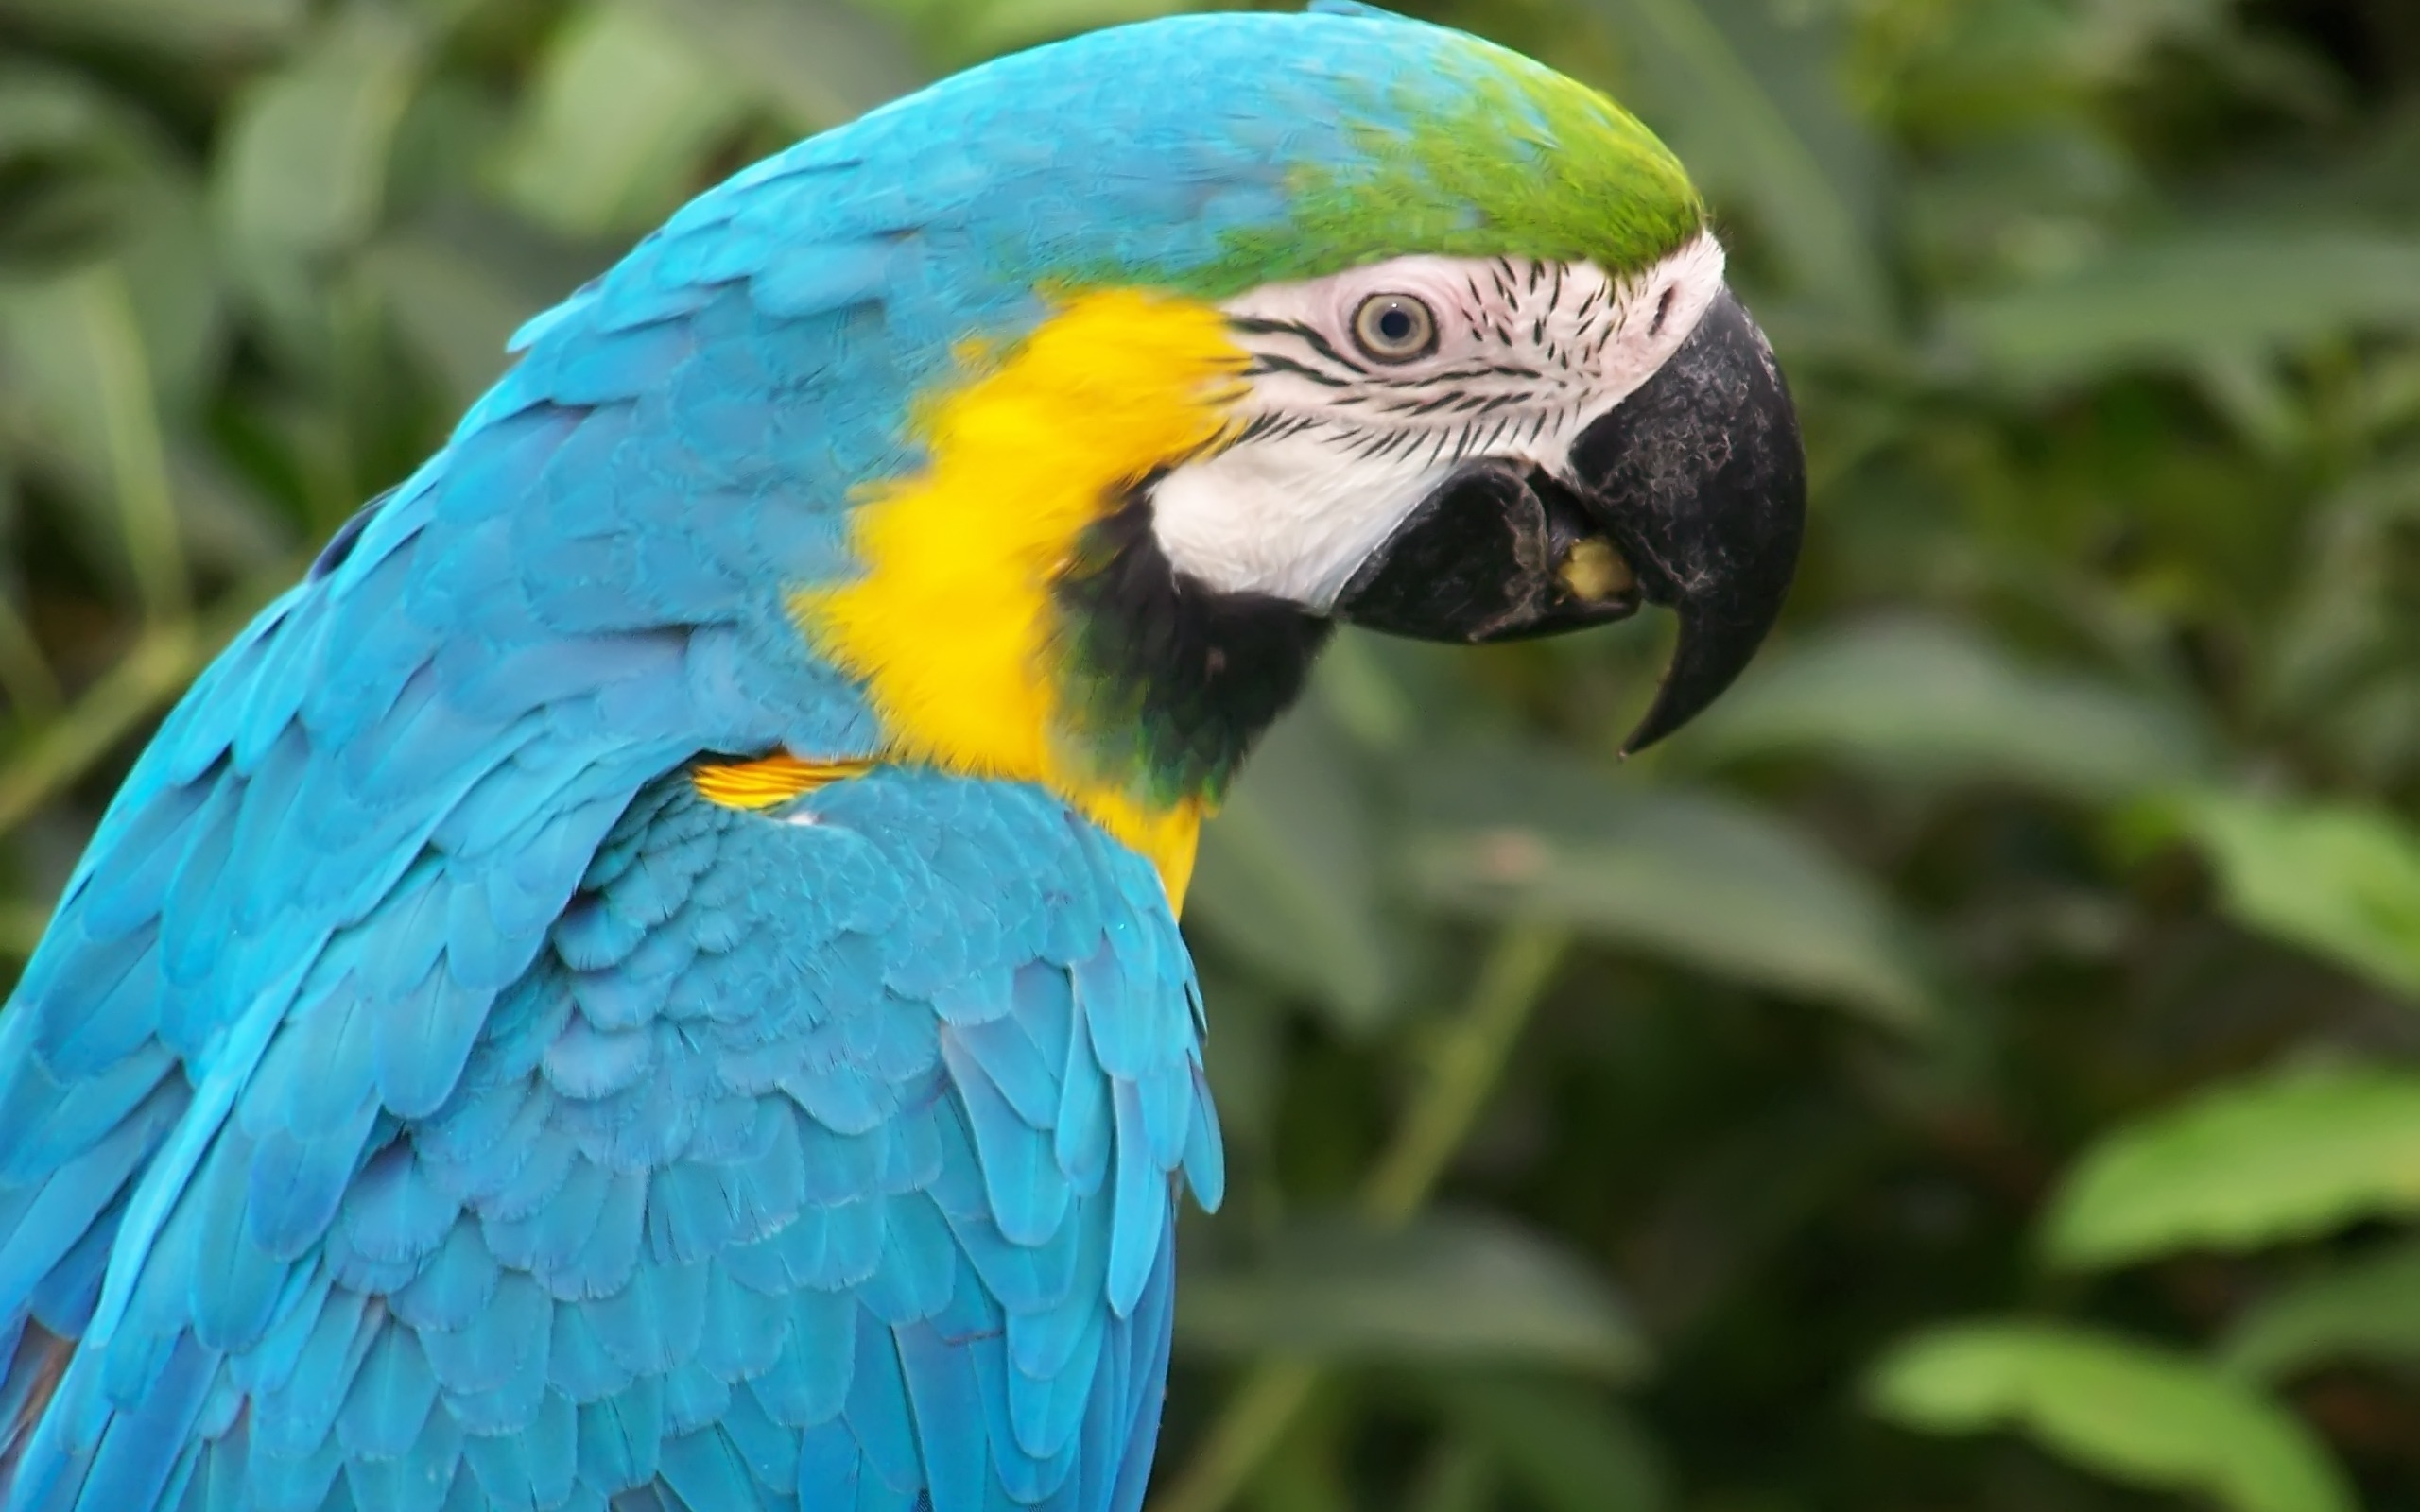 Parot Wallpapers Blue Macaw Parrot Wallpaper Parrots Animals Wallpapers In Jpg